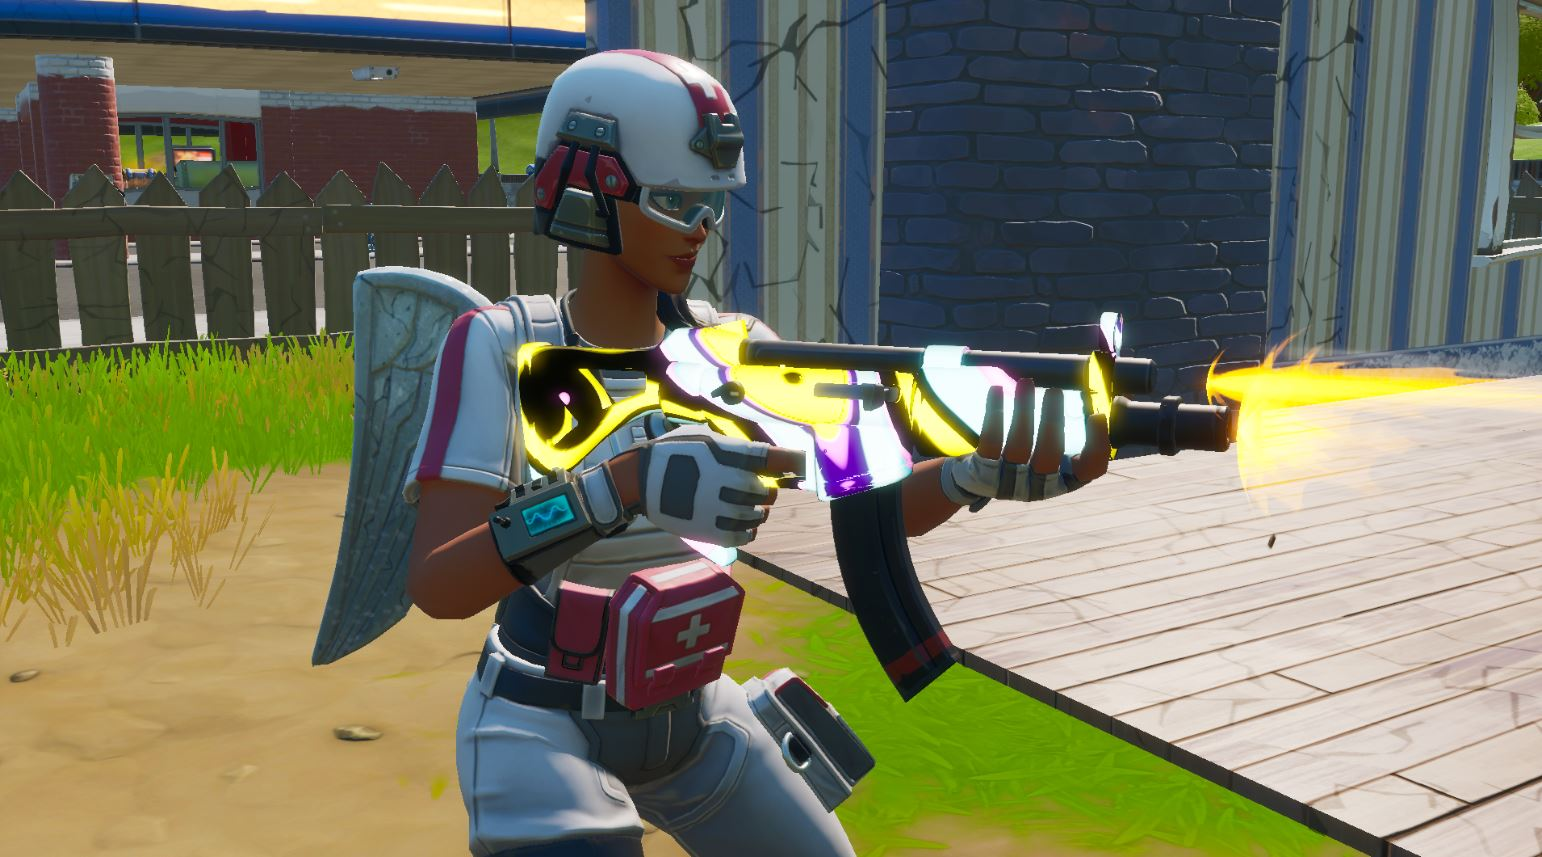 How to get the afterparty fortnite wrap for free